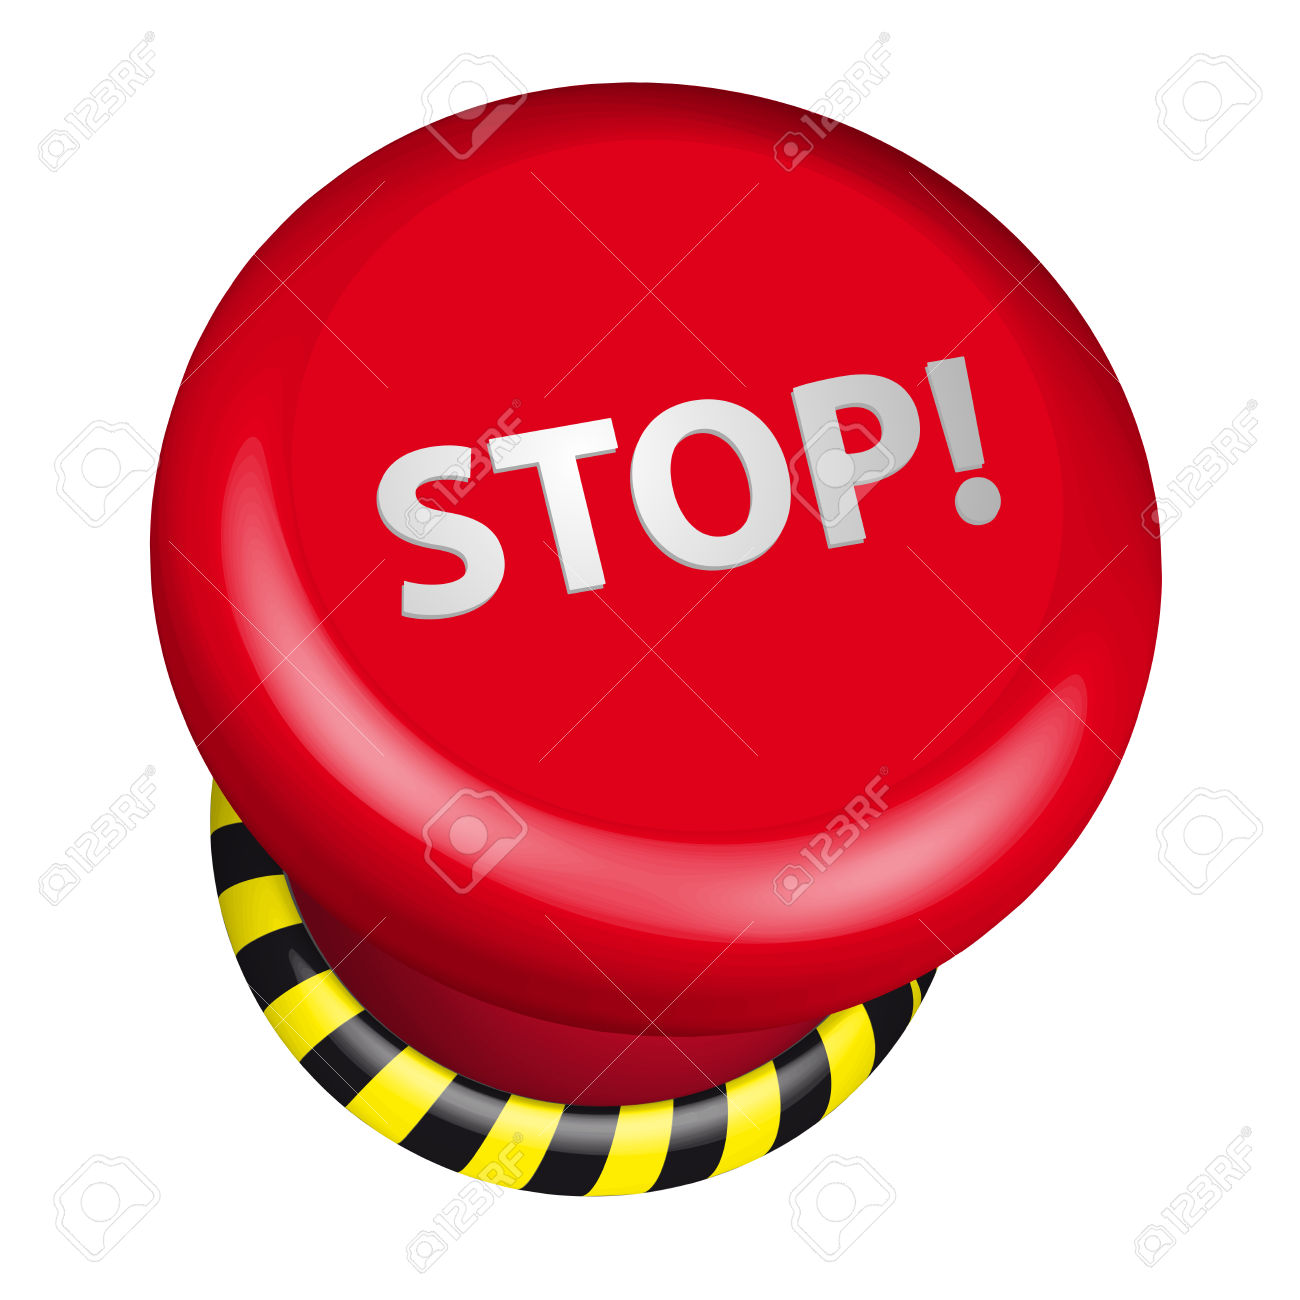 Detailed Illustration Of An Industrial Emergency Stop Button.